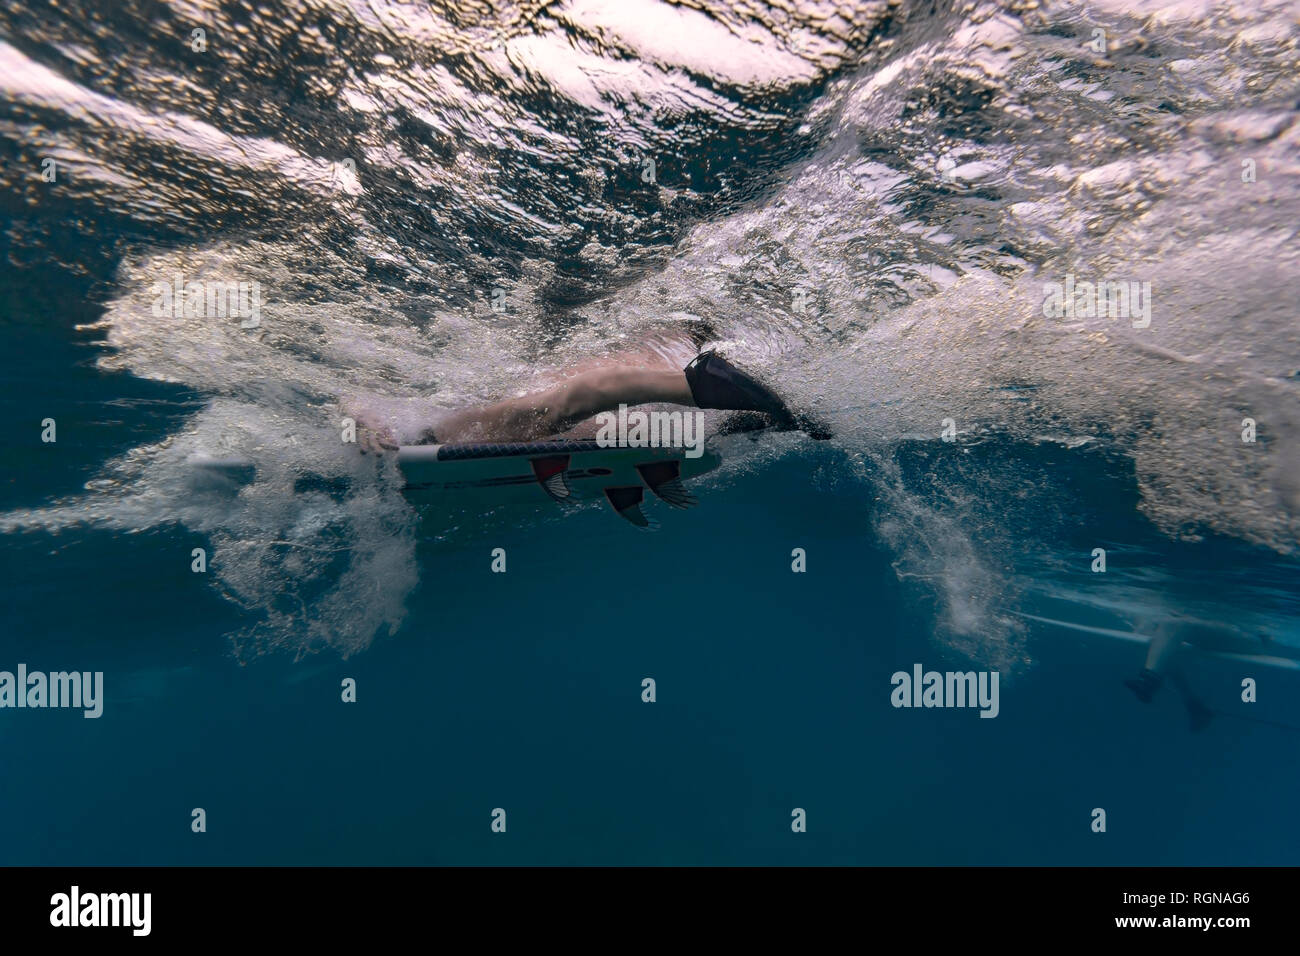 Maledives, Under water view of wave, surfer sitting on surfboard, underwater shot - Stock Image